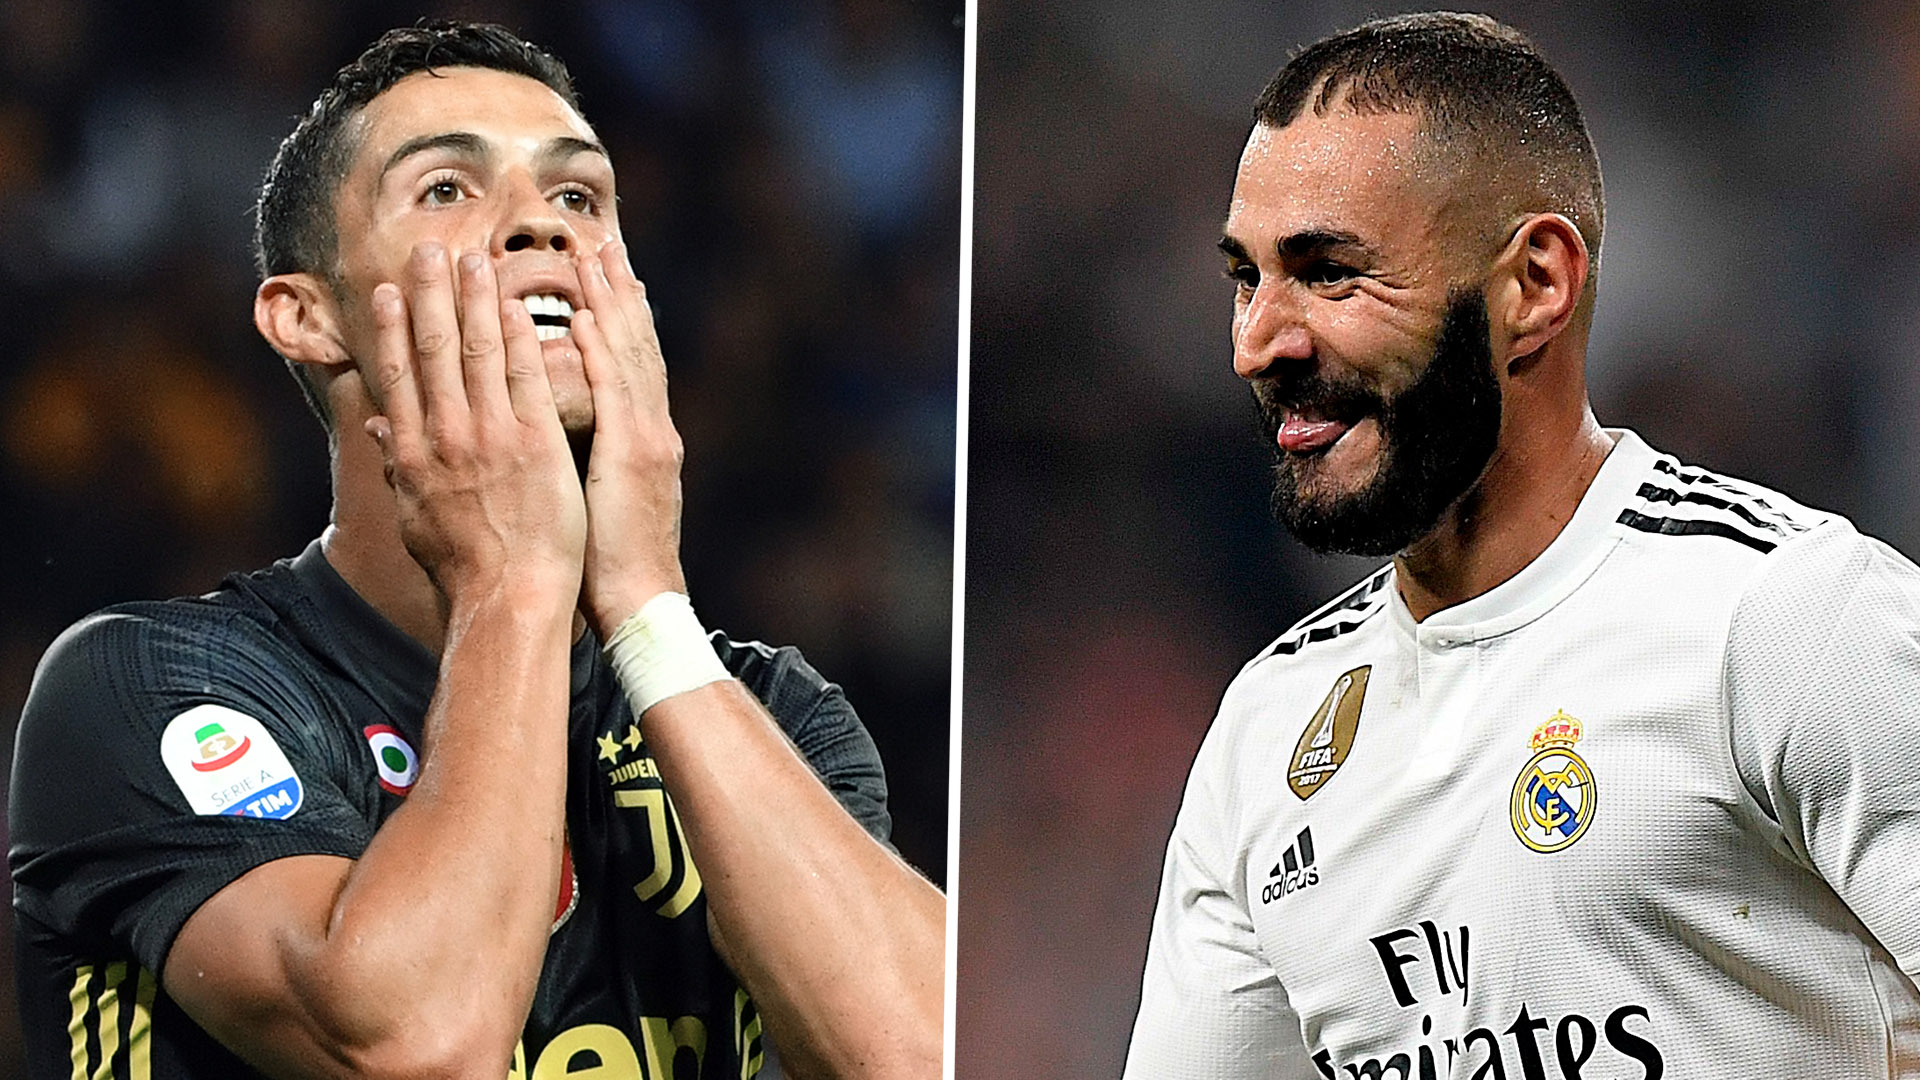 'Benzema is like Ronaldo for Real Madrid' – Zidane hails French forward after 50th Champions League goal